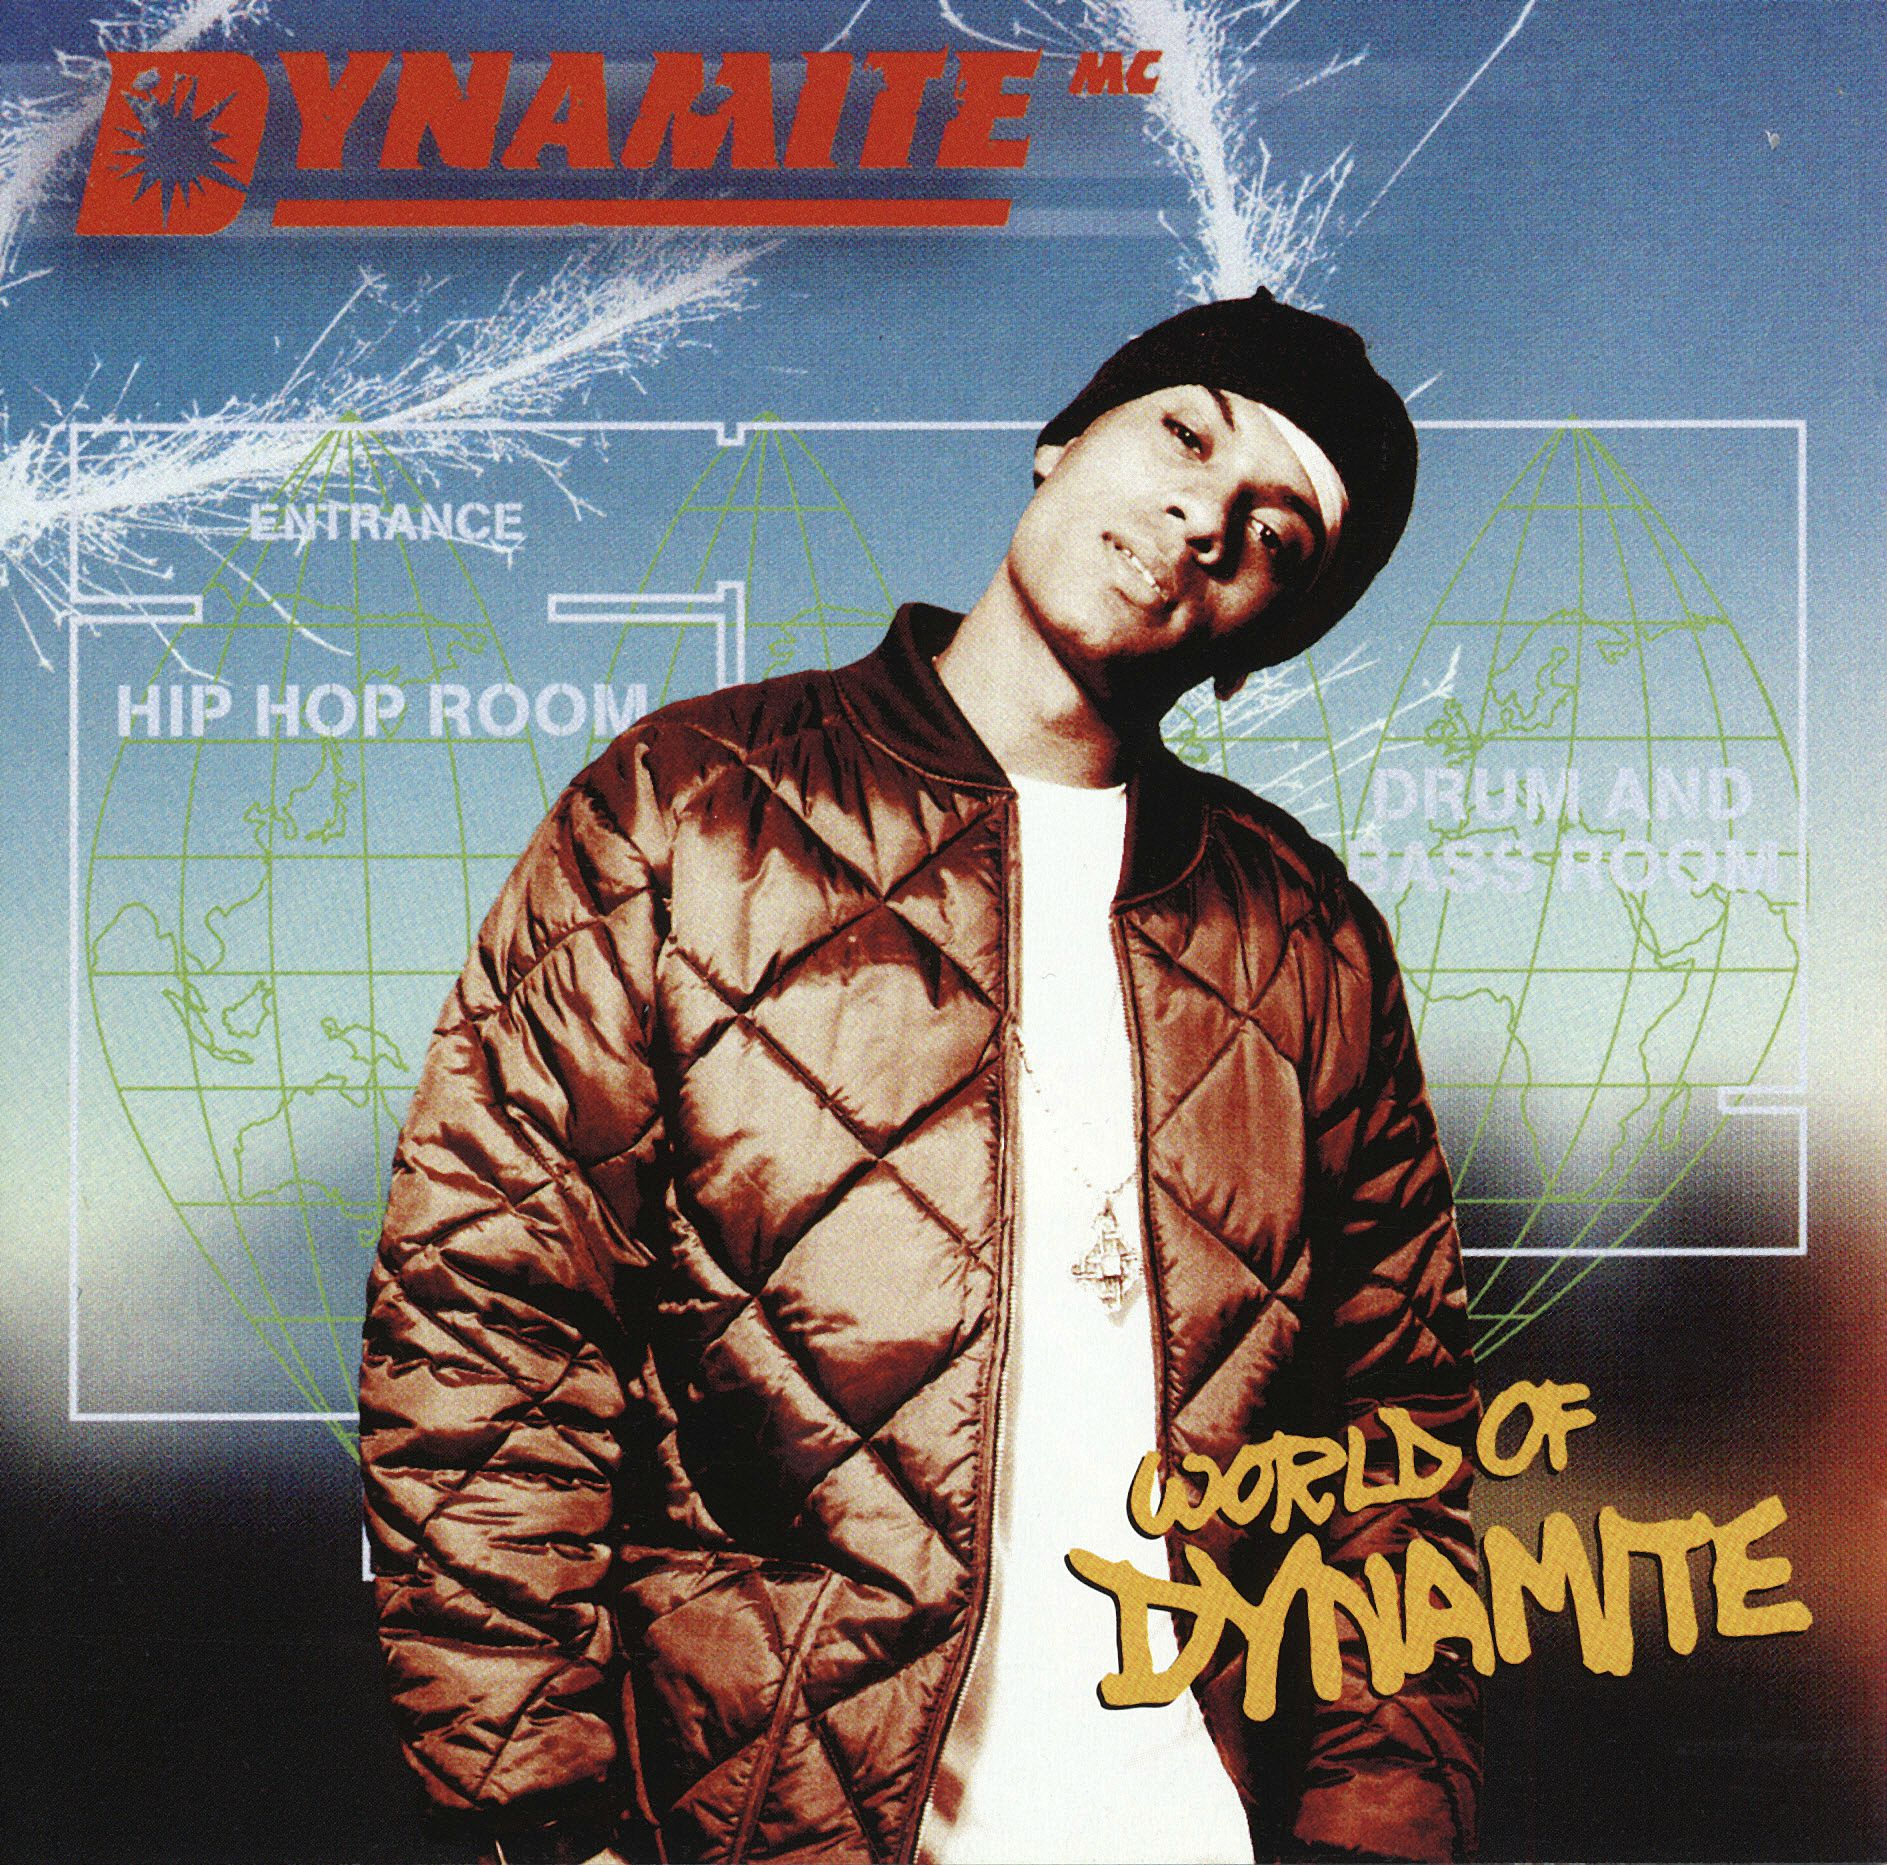 World of Dynamite – Deluxe Edition